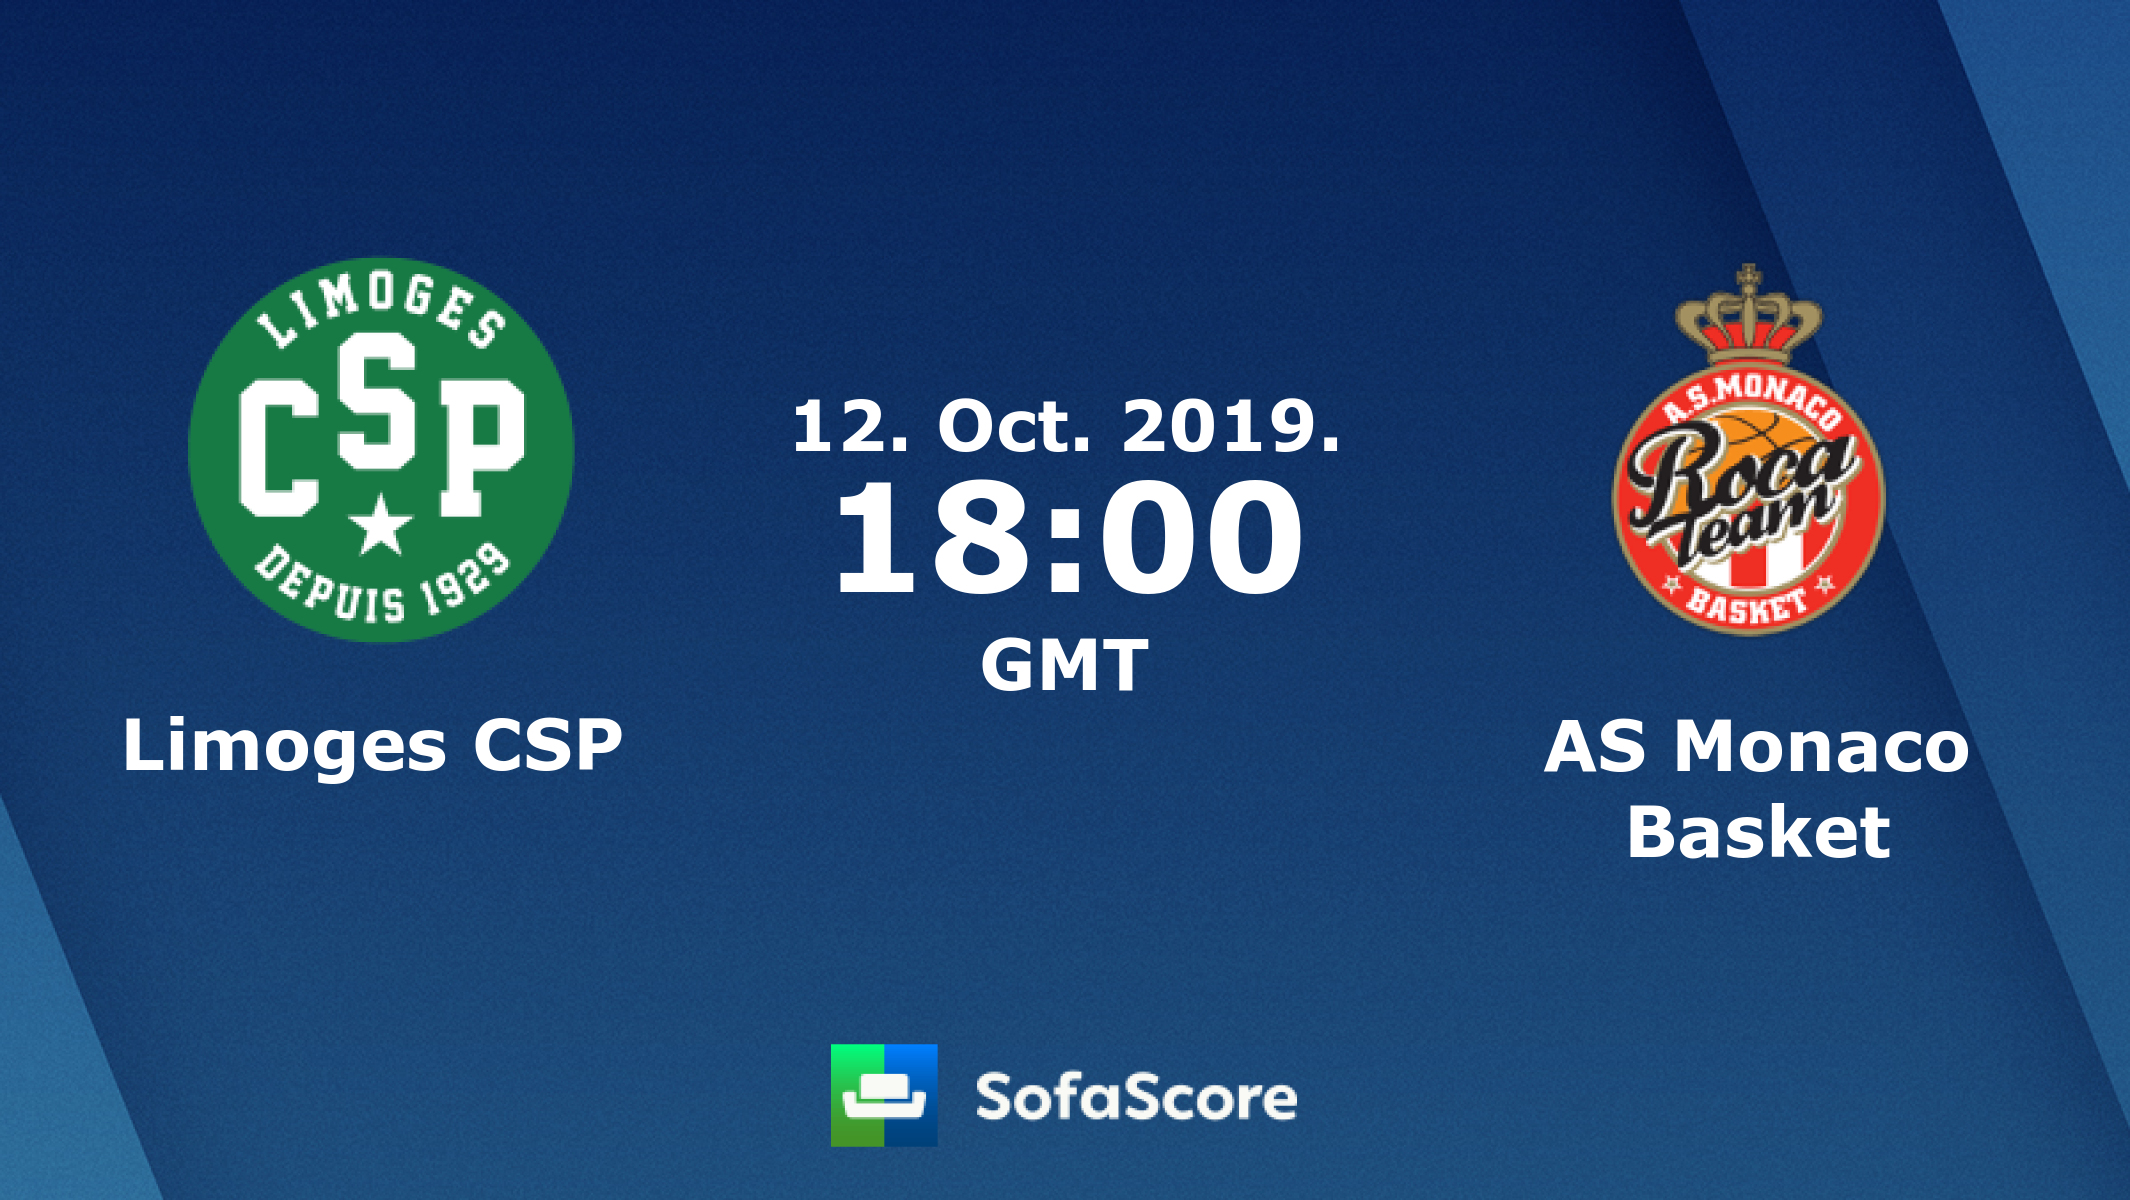 Limoges CSP AS Monaco Basket live score, video stream and H2H